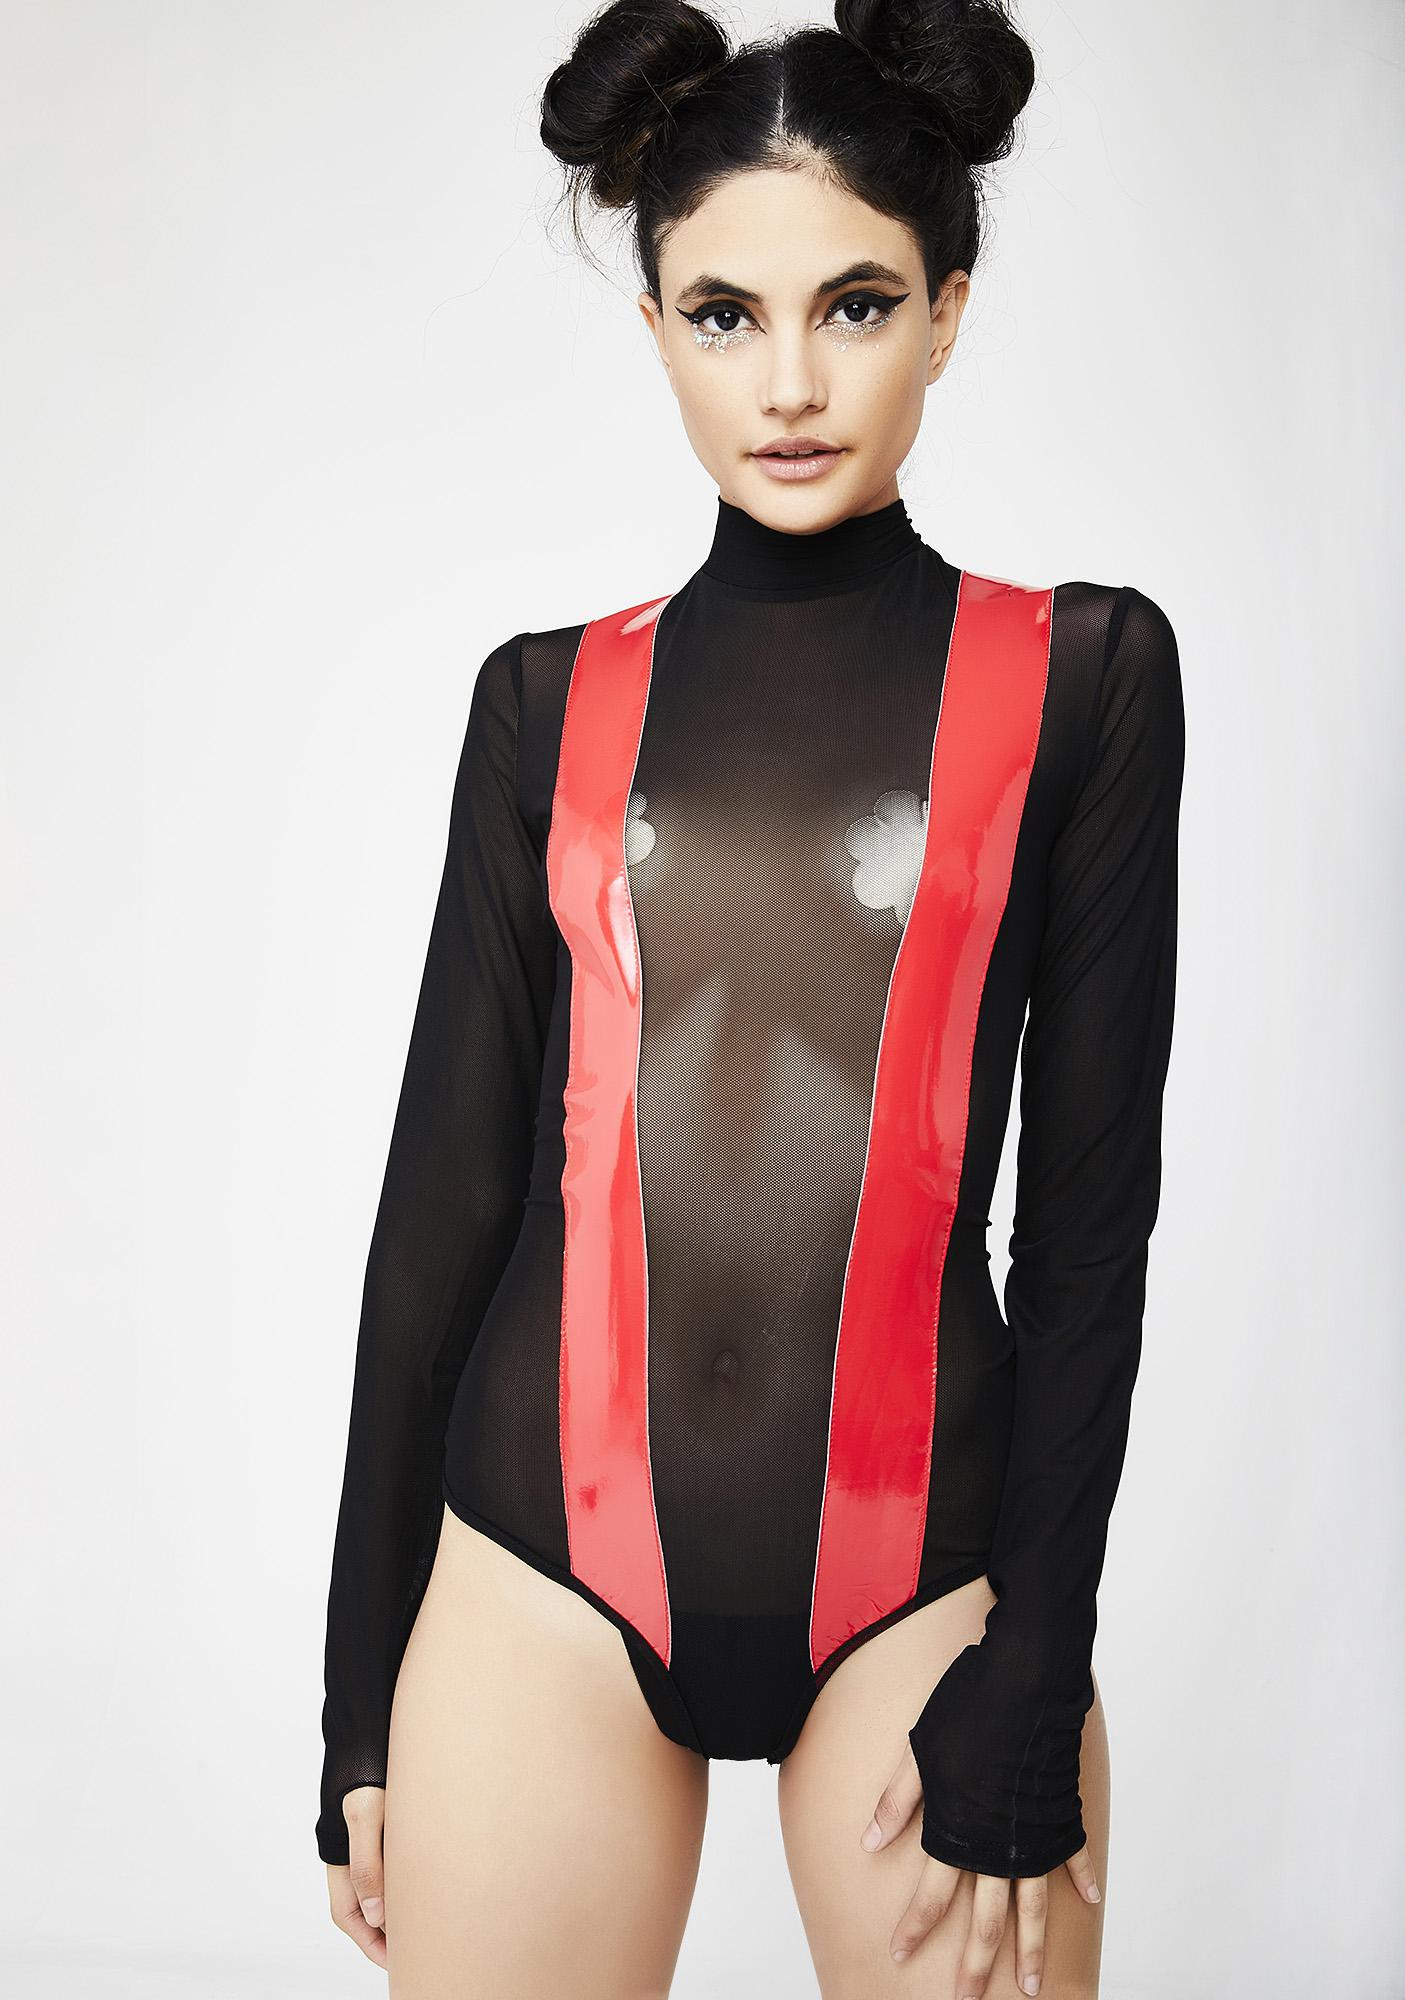 I AM GIA Ironbar Bodysuit